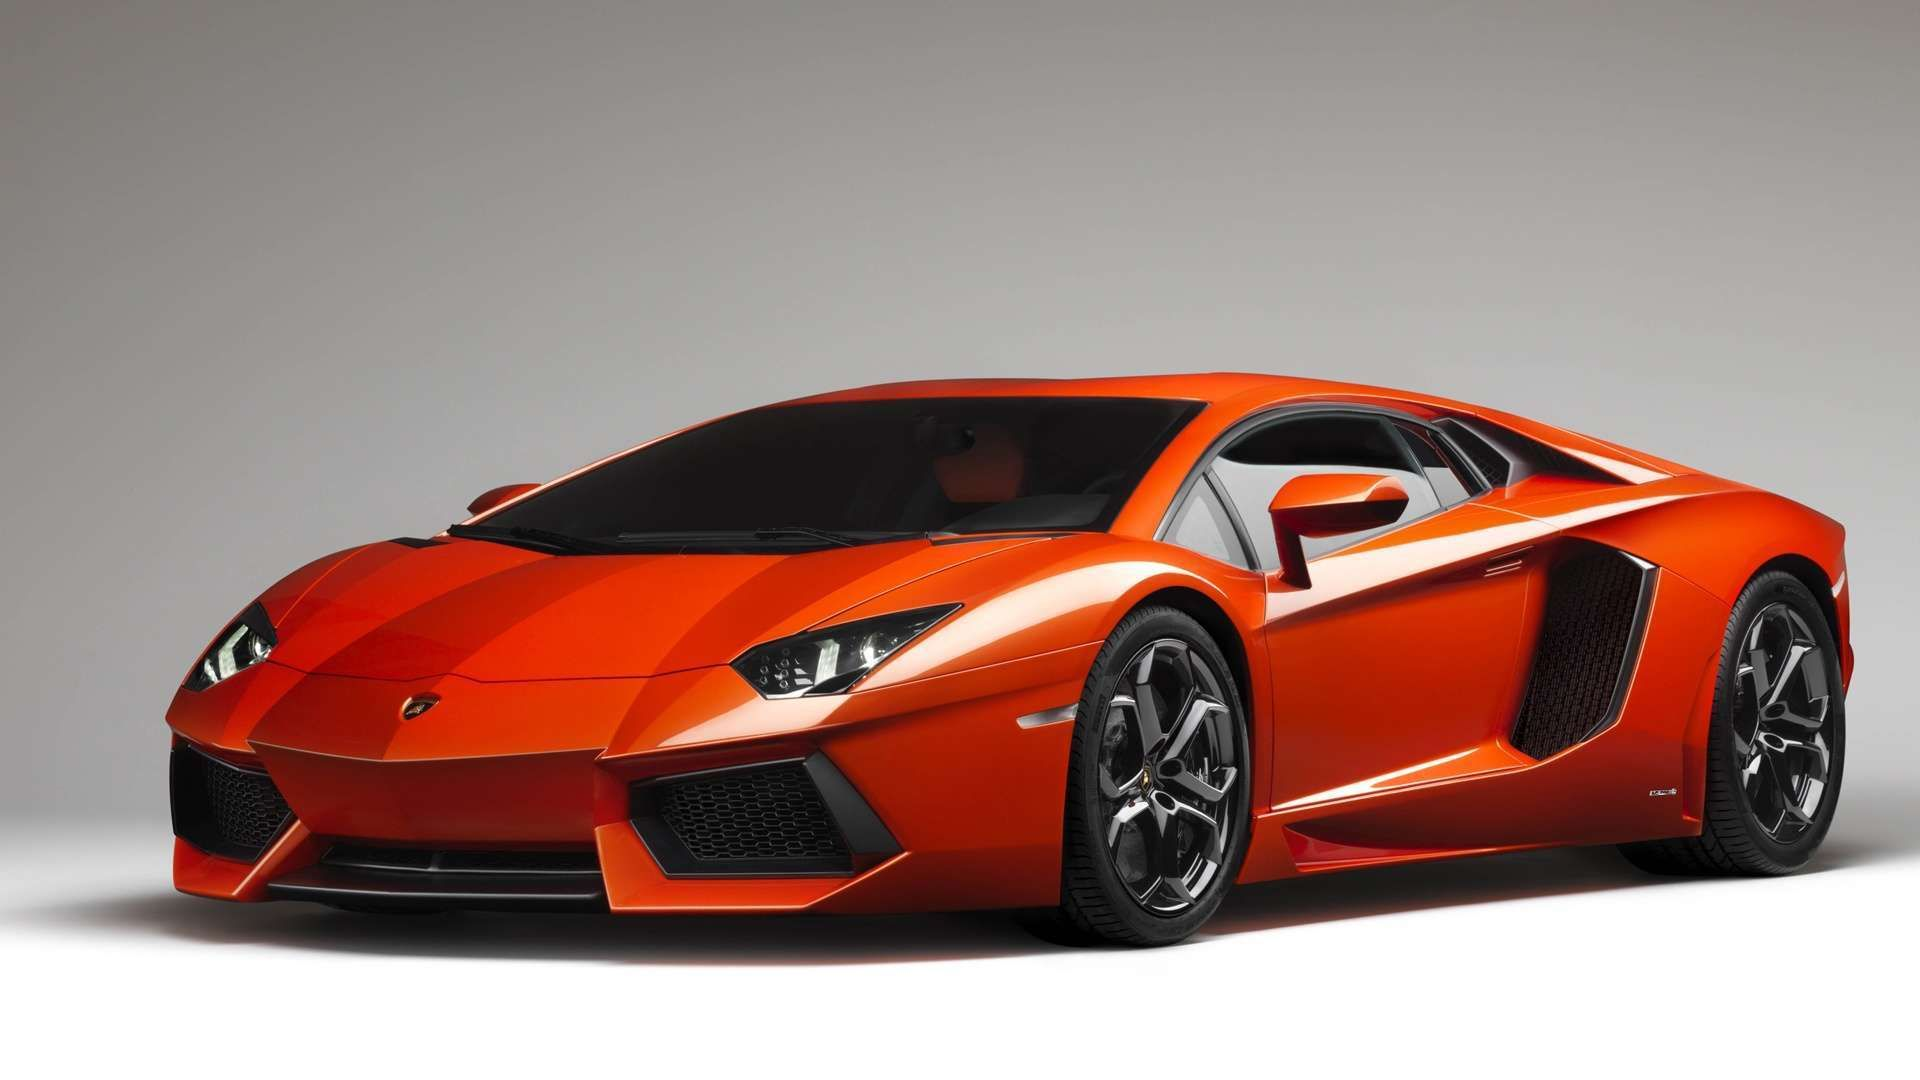 nv luxury a huracan share car in las nevada vegas add favorites to white lamborghini rent rental